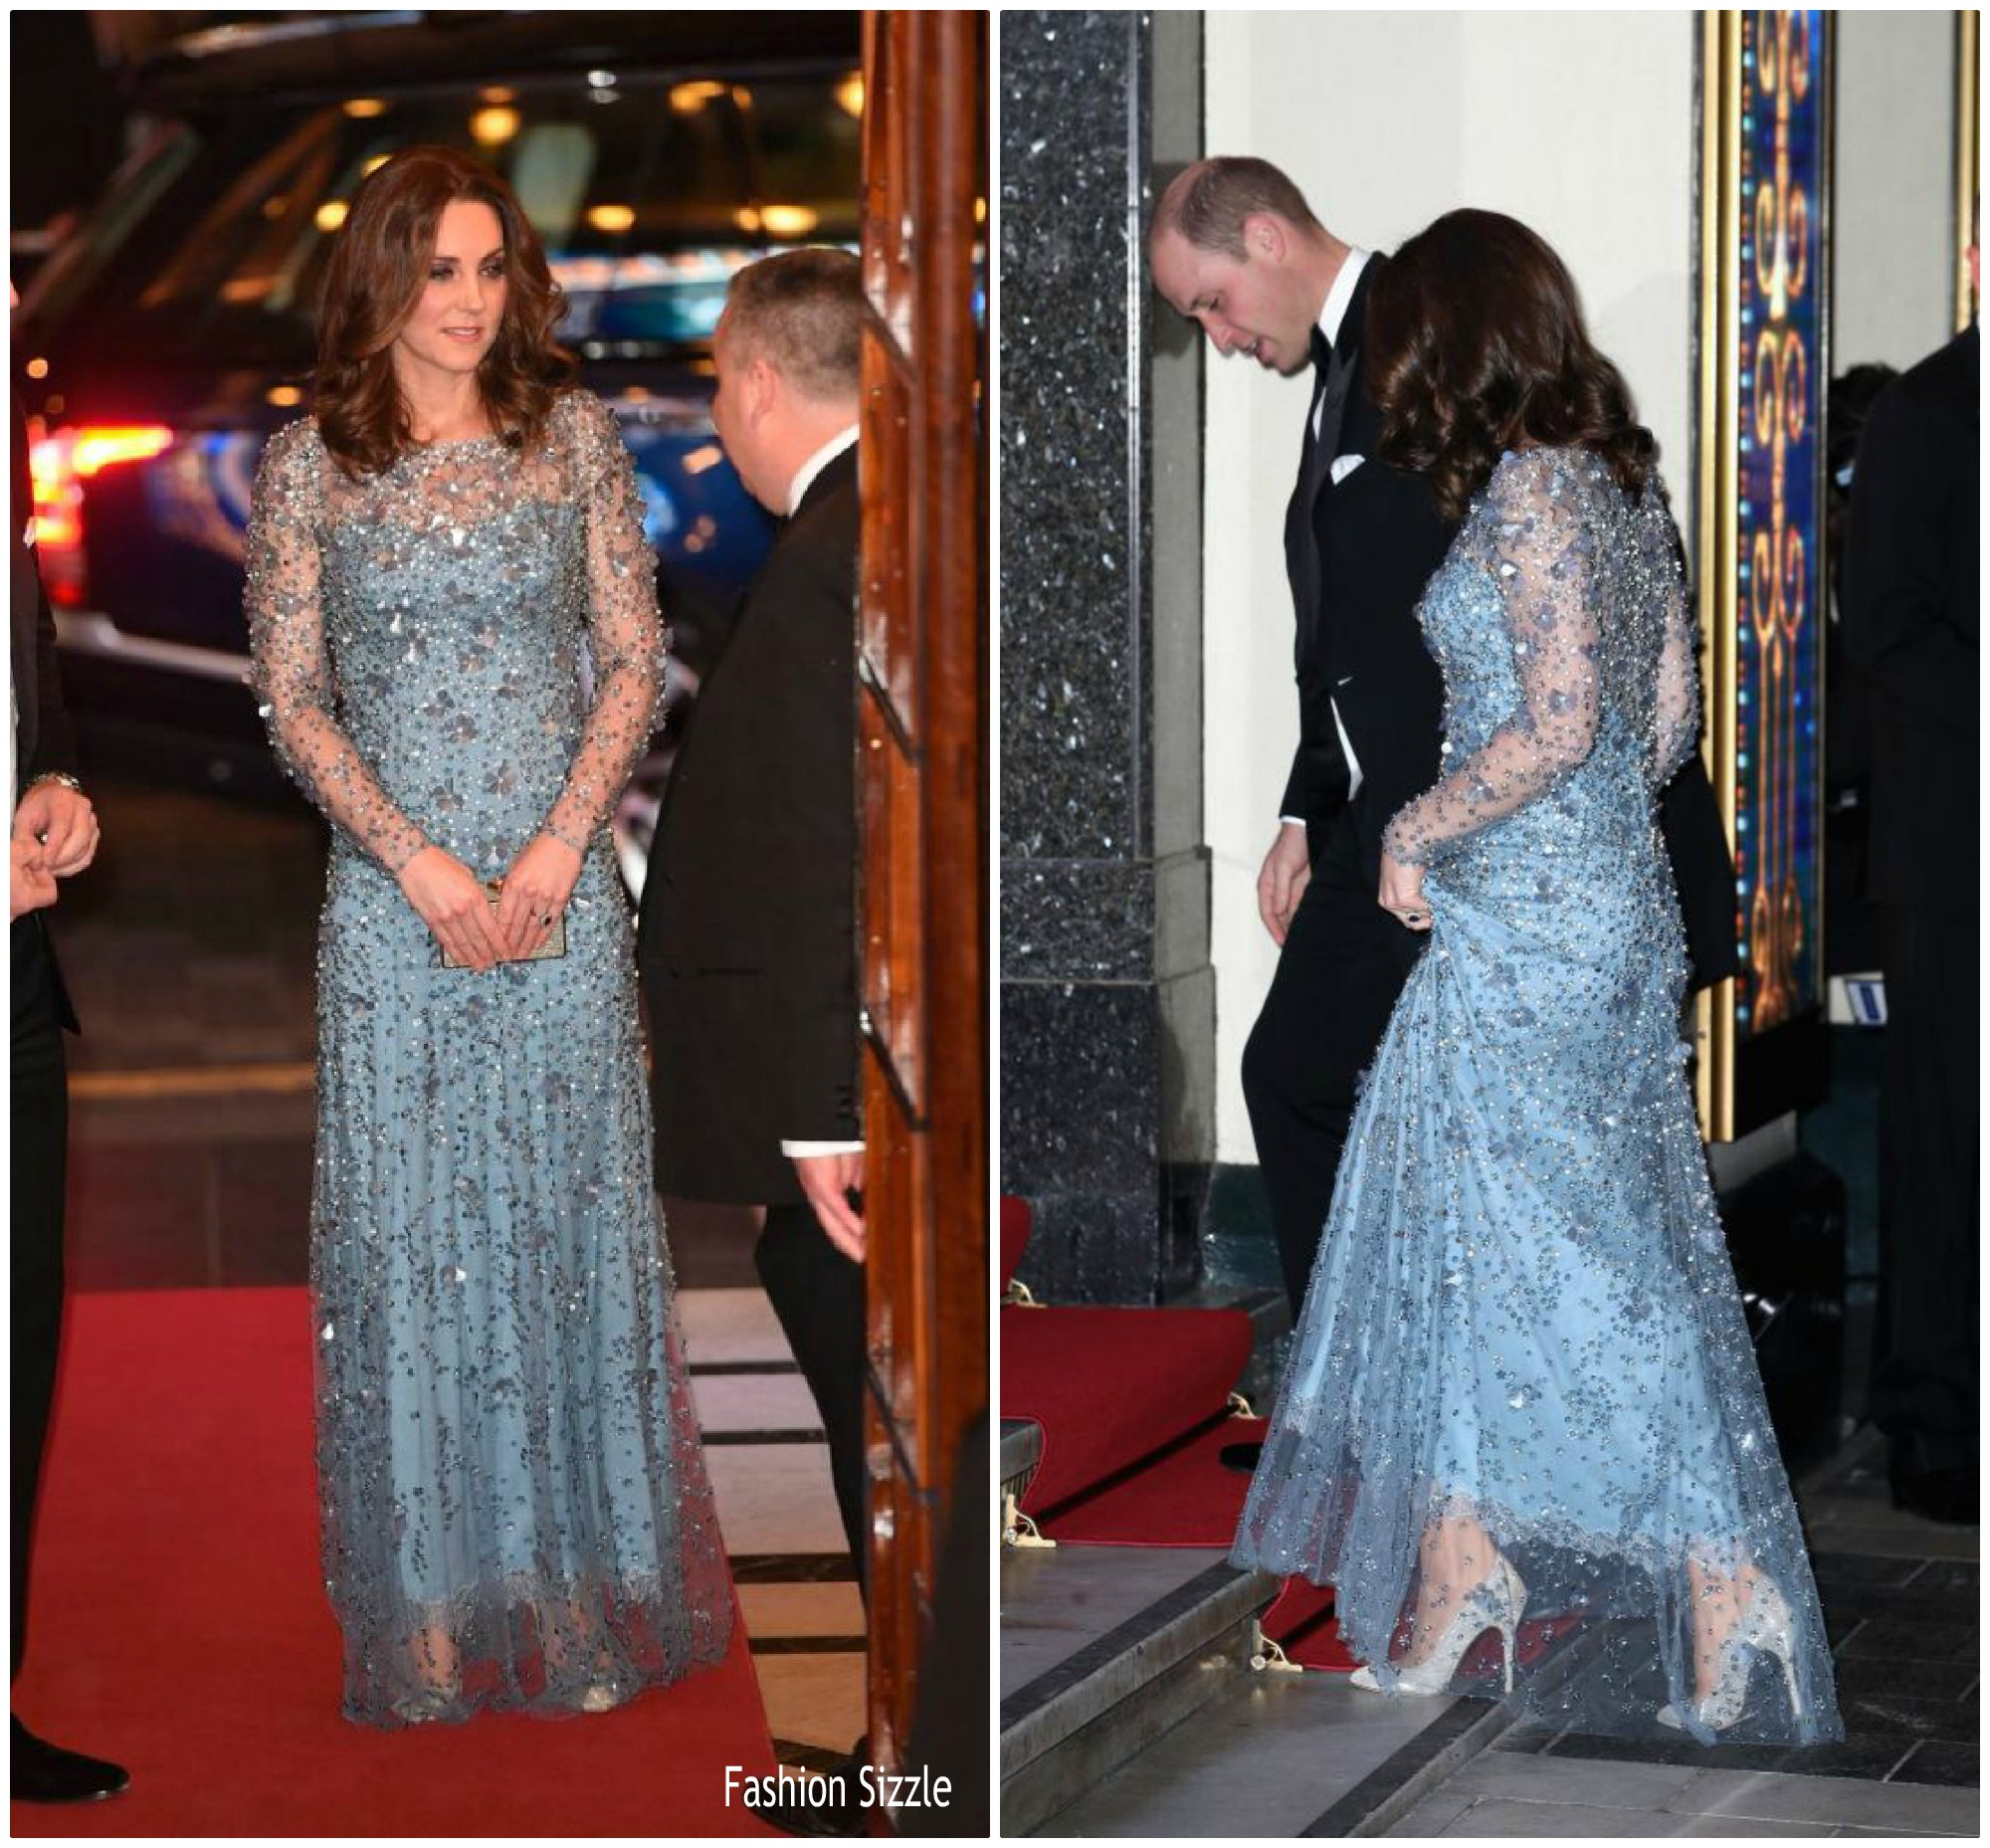 kate-middleton-in-jenny-packman-royal-variety-performance-in-london